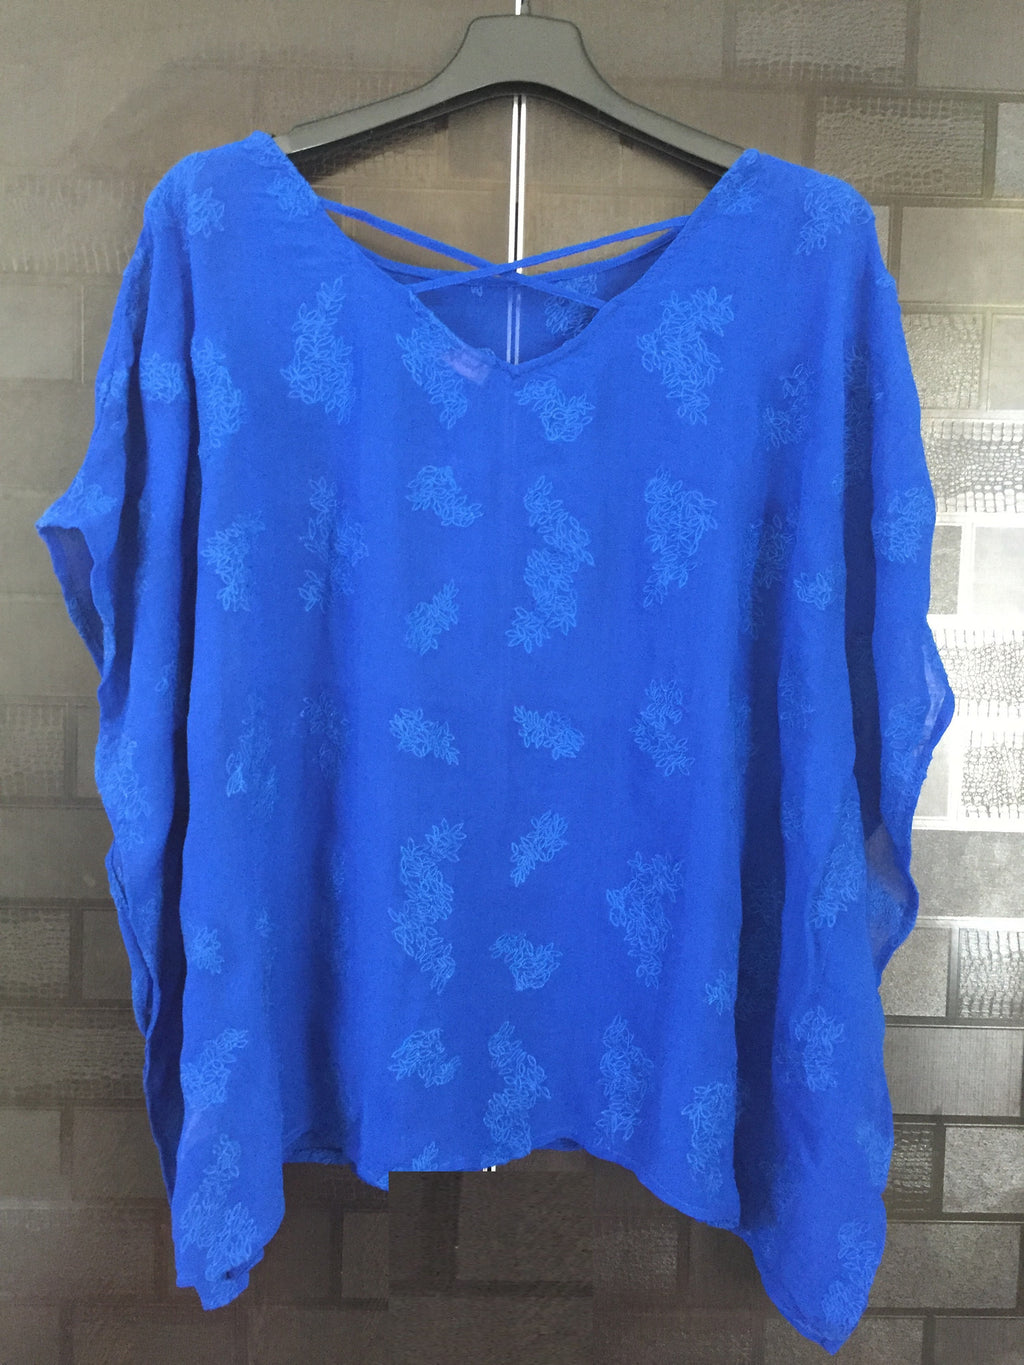 Blue Kaftan Style Top with Blue thread-work